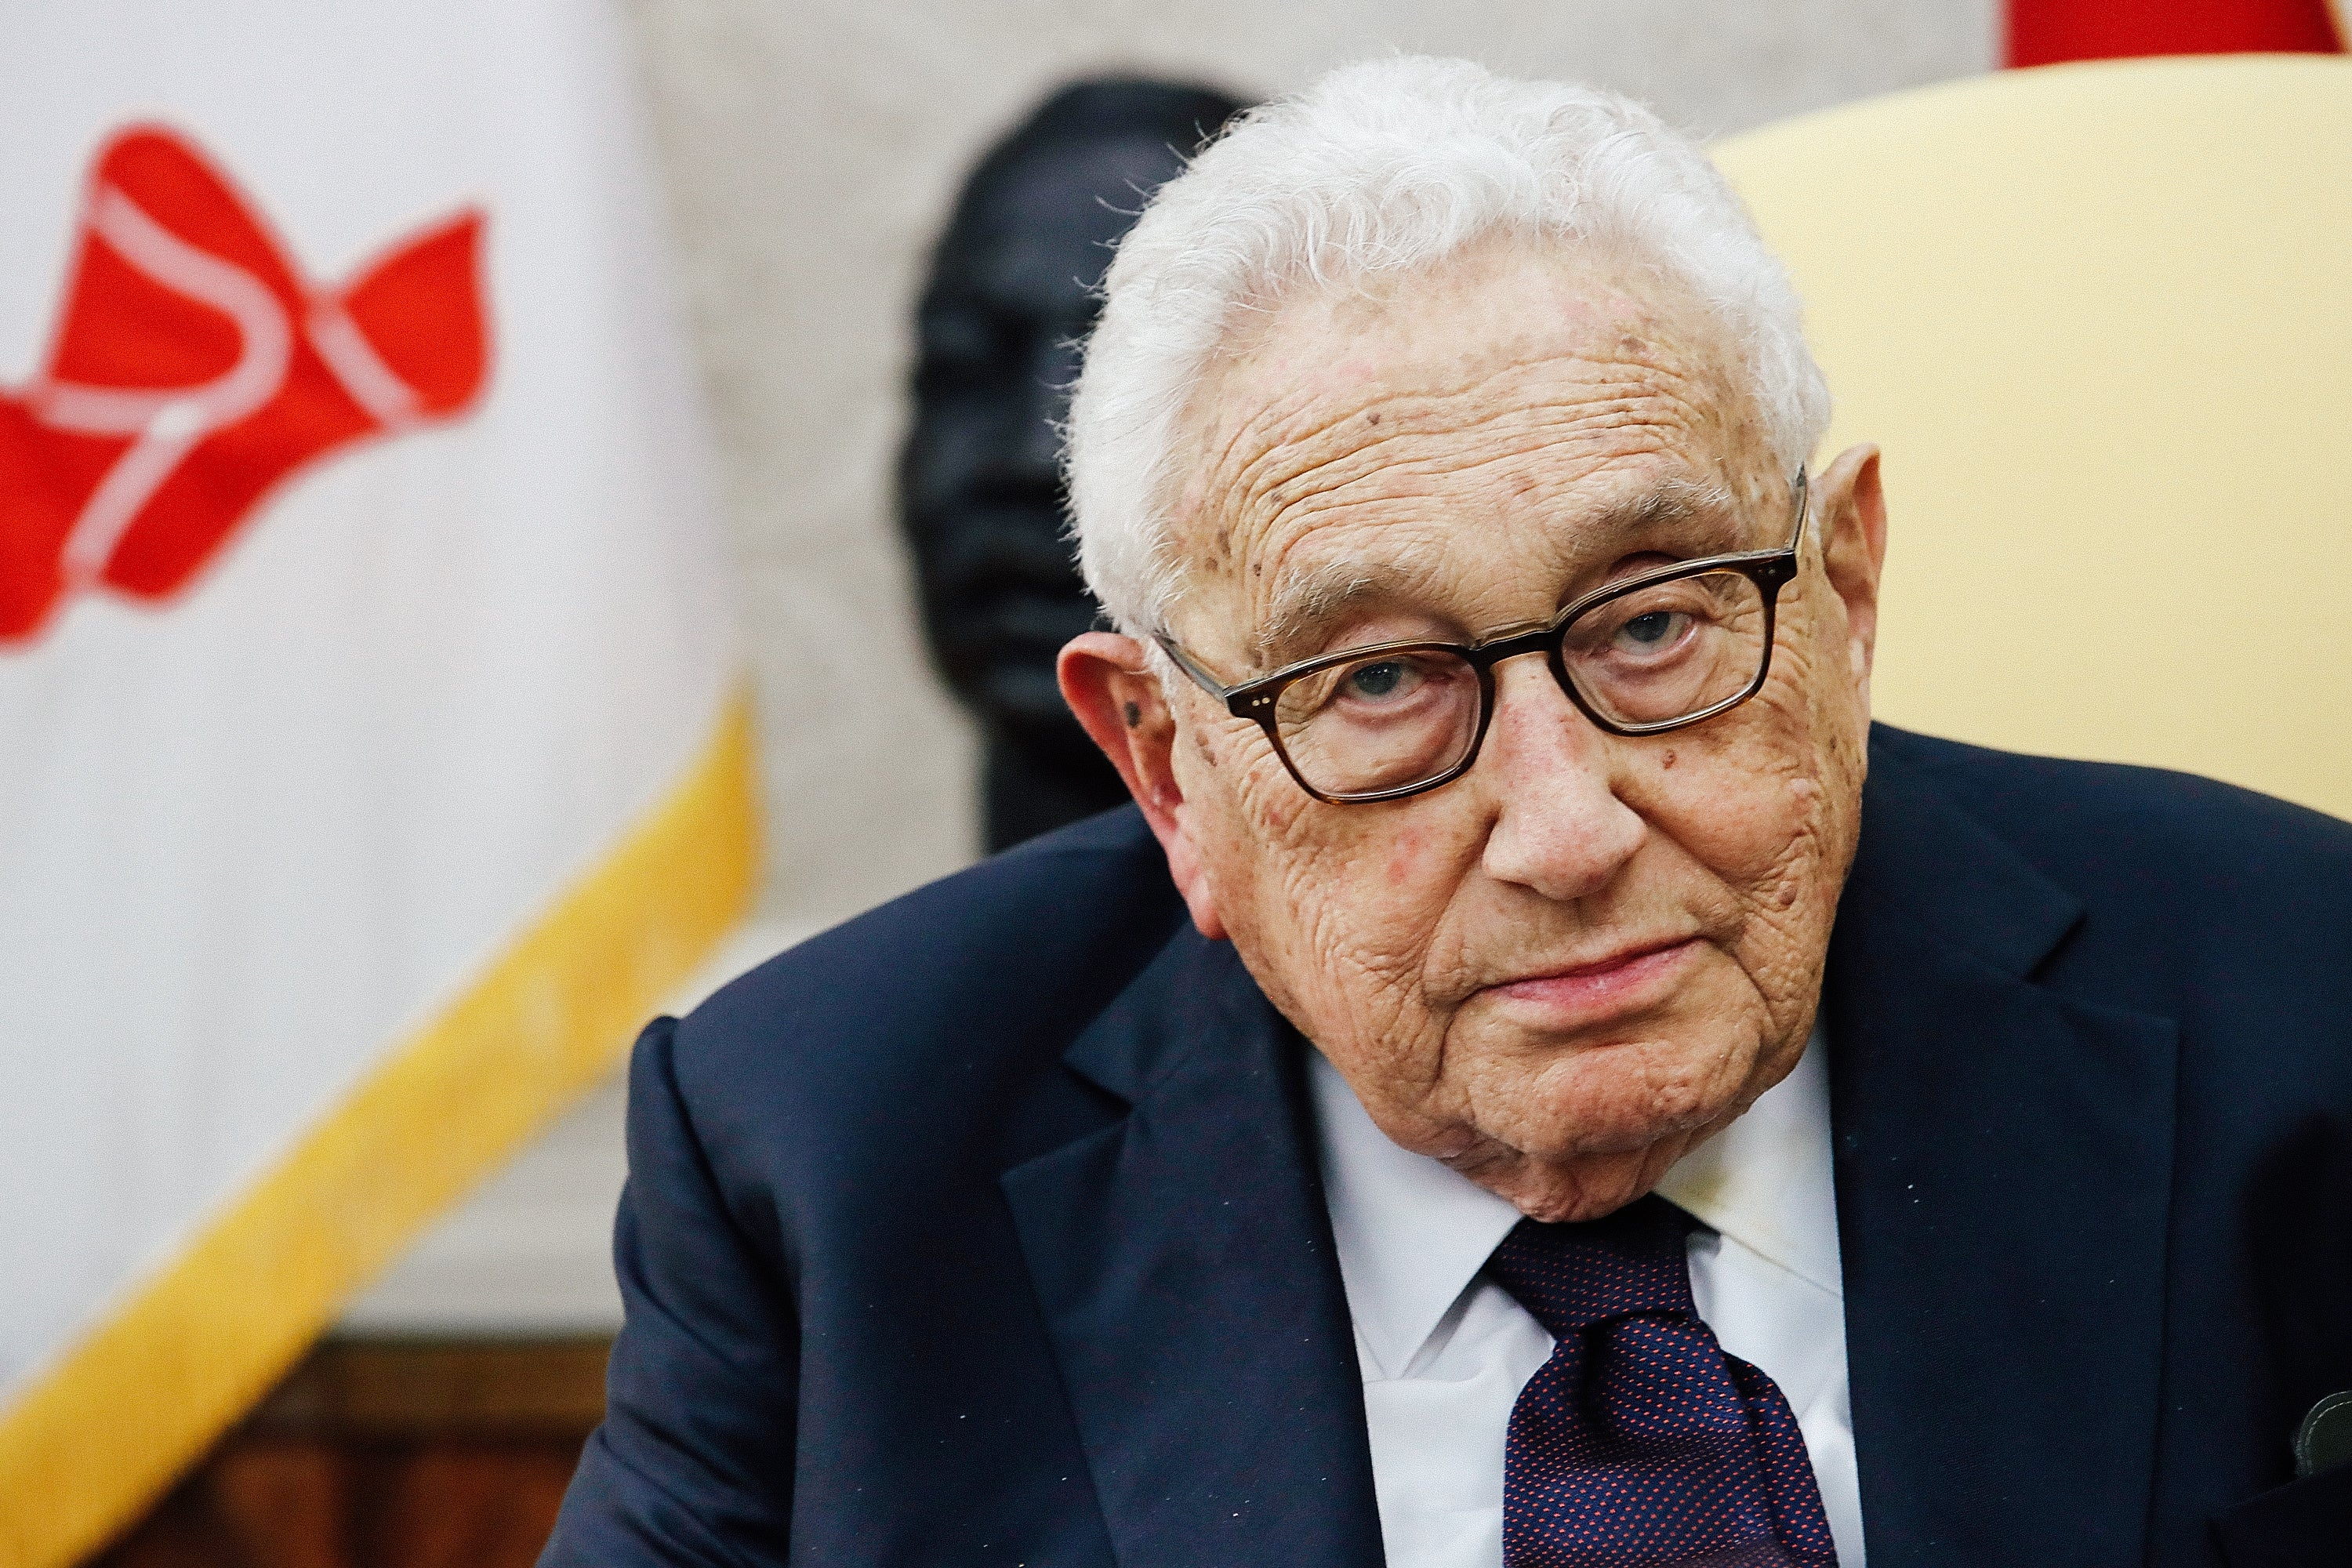 Former Secretary of State Henry Kissinger meets with President Donald Trump in the Oval Office on Oct. 10, 2017, in Washington.